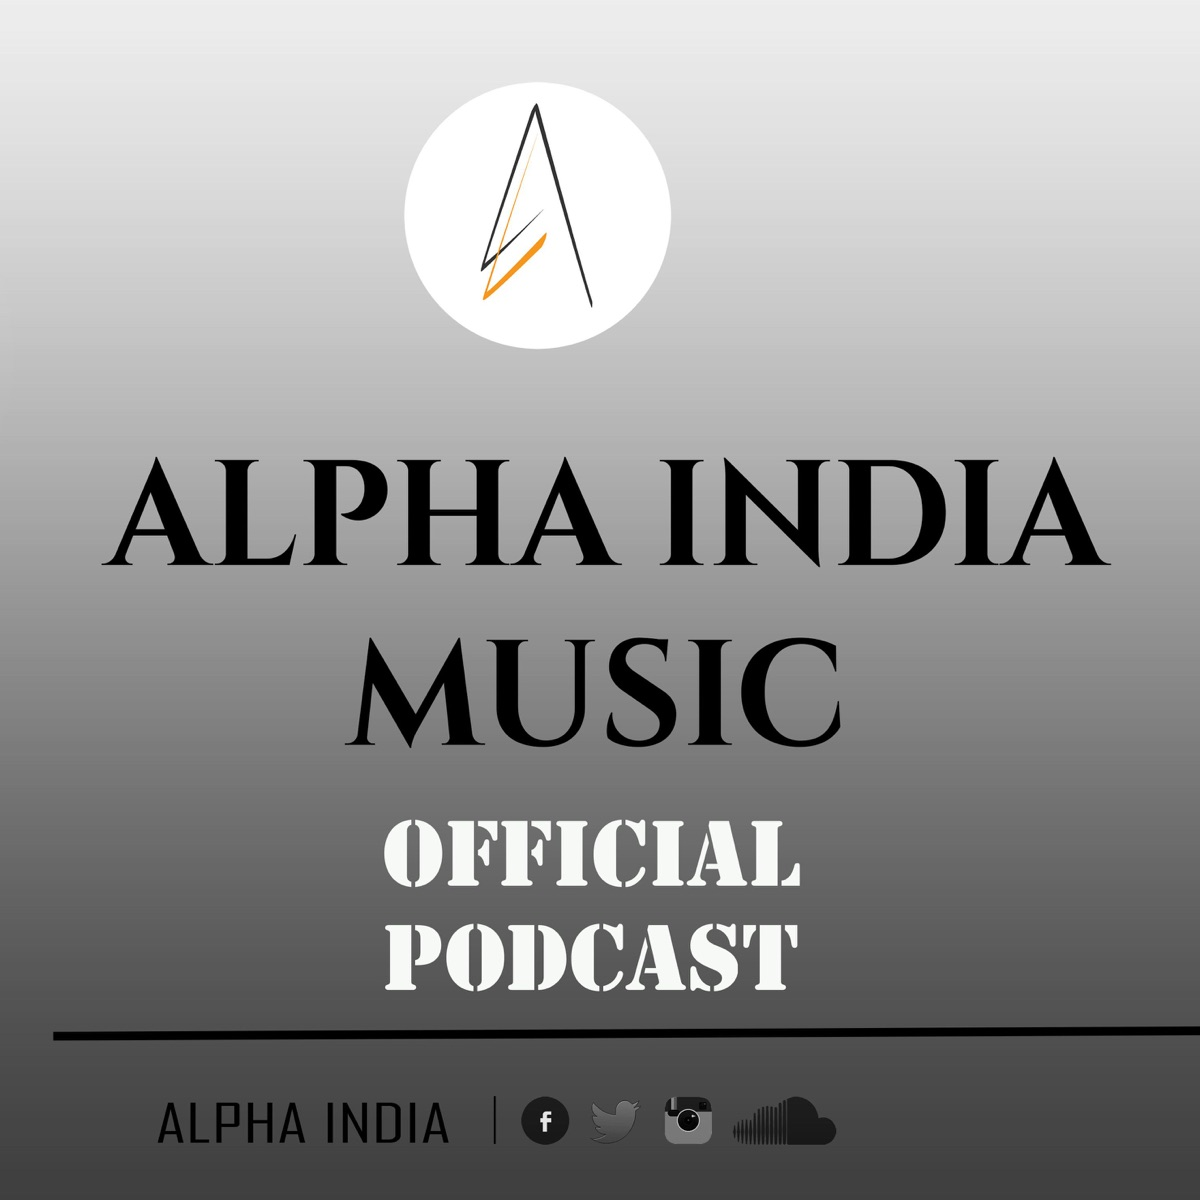 Alpha India Music Official Podcast